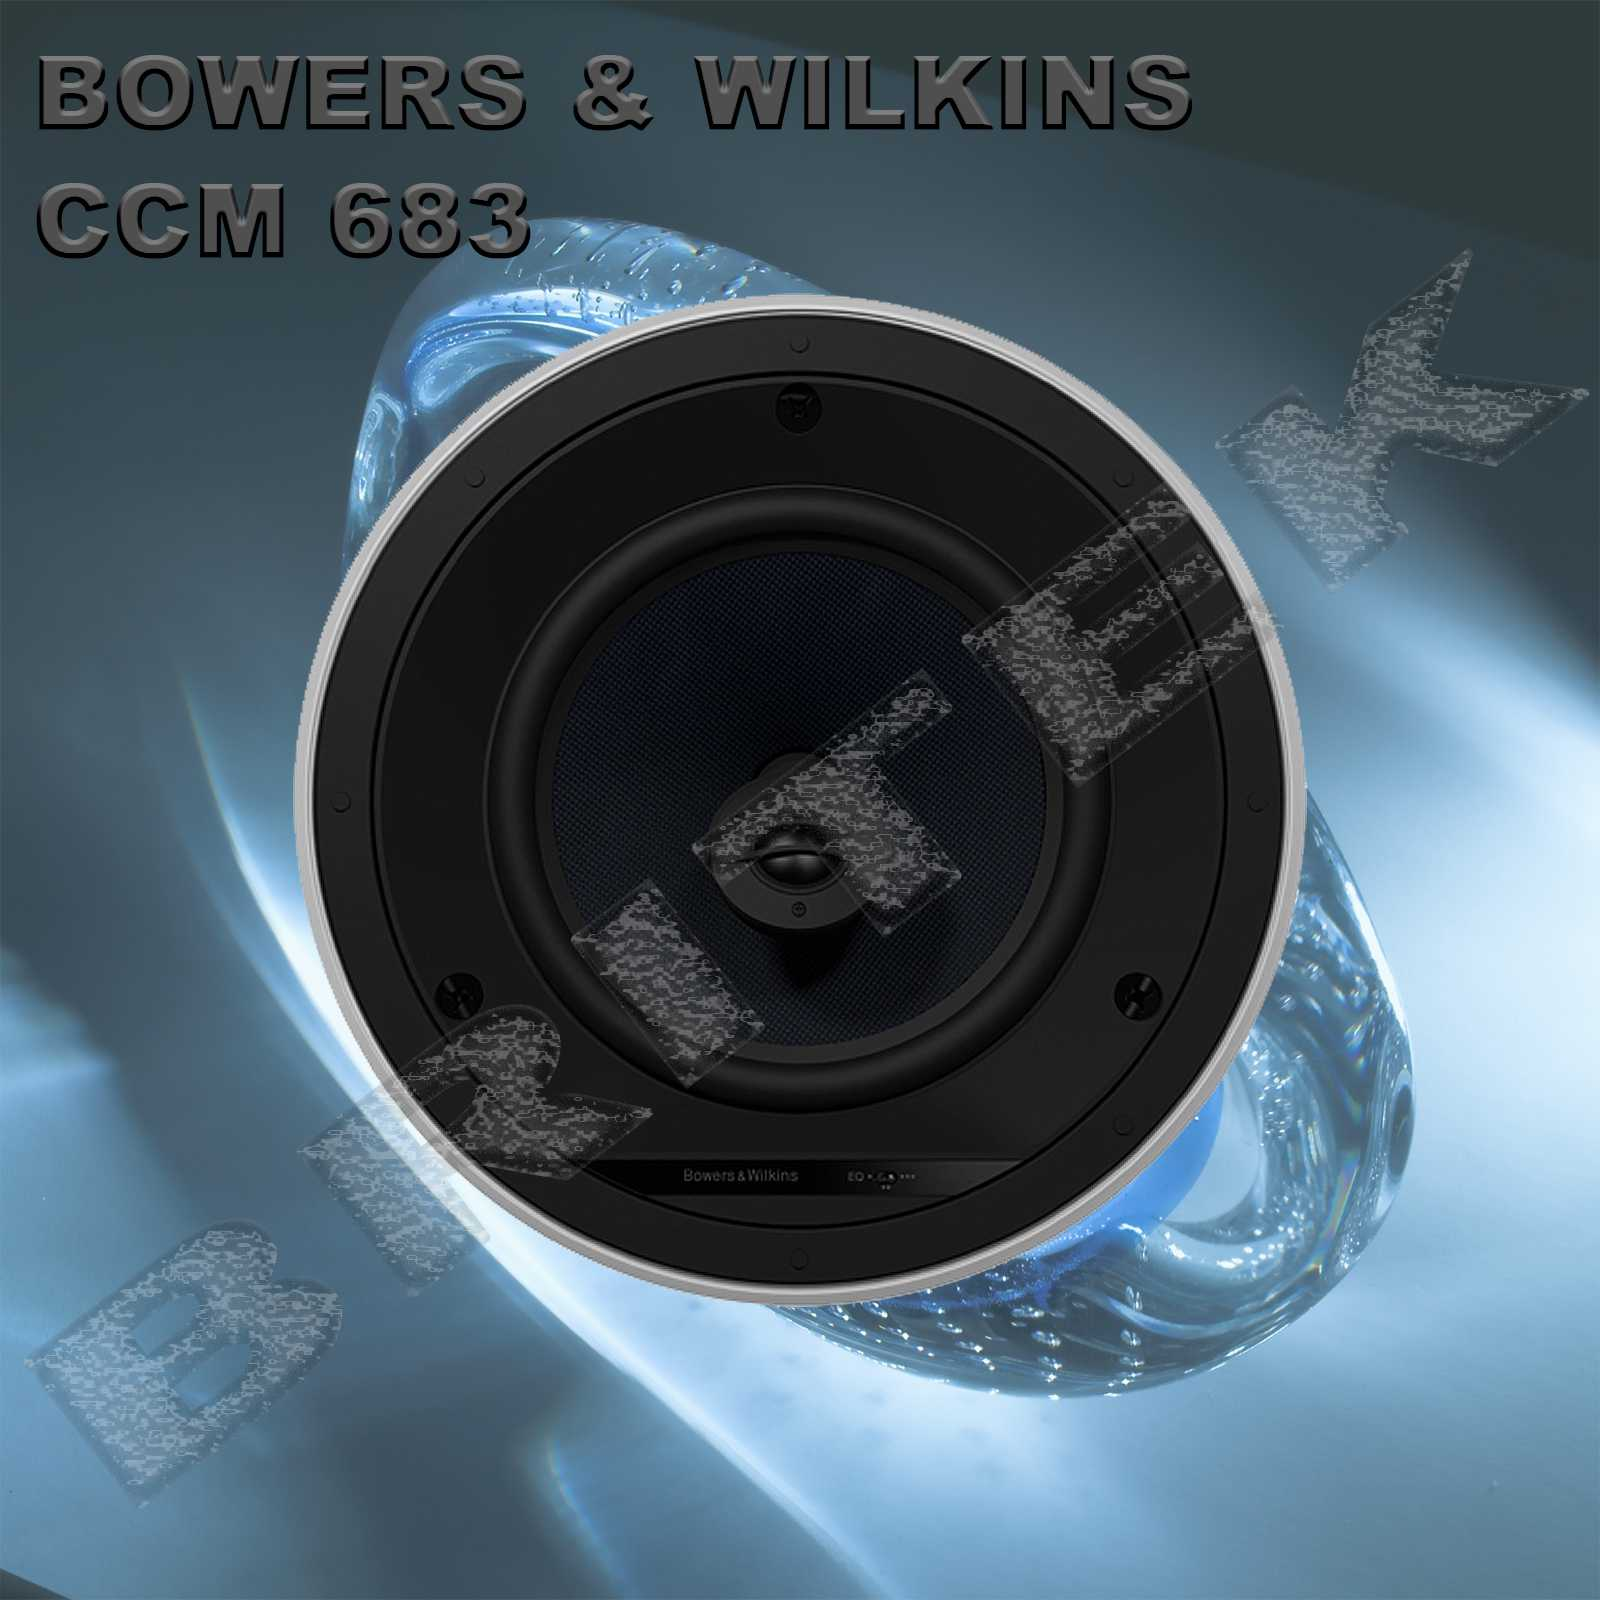 Bowers & Wilkins CCM 683